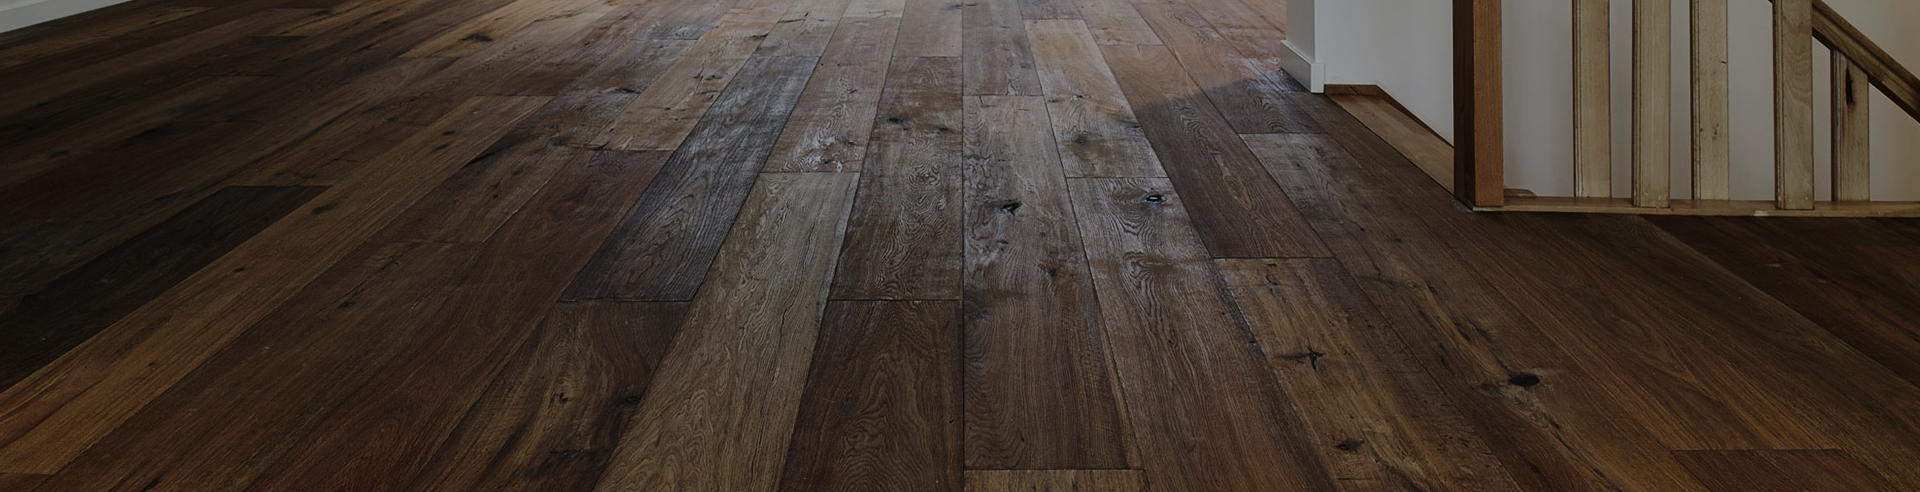 Designer Wood Flooring   Hardwood Flooring In San Antonio, TX